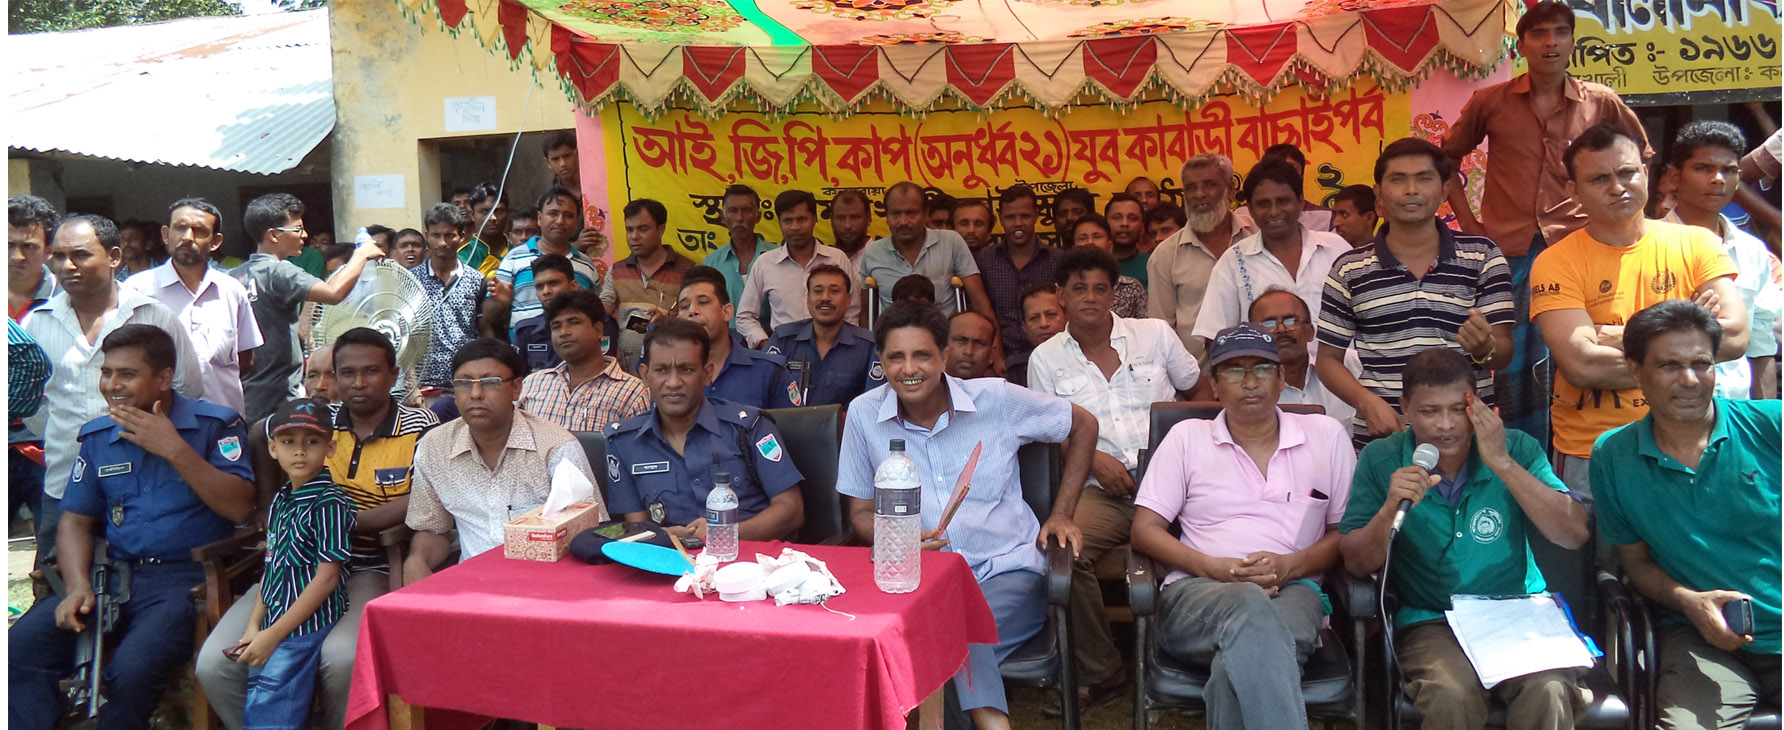 IGP Cup Pic-17.jpg----